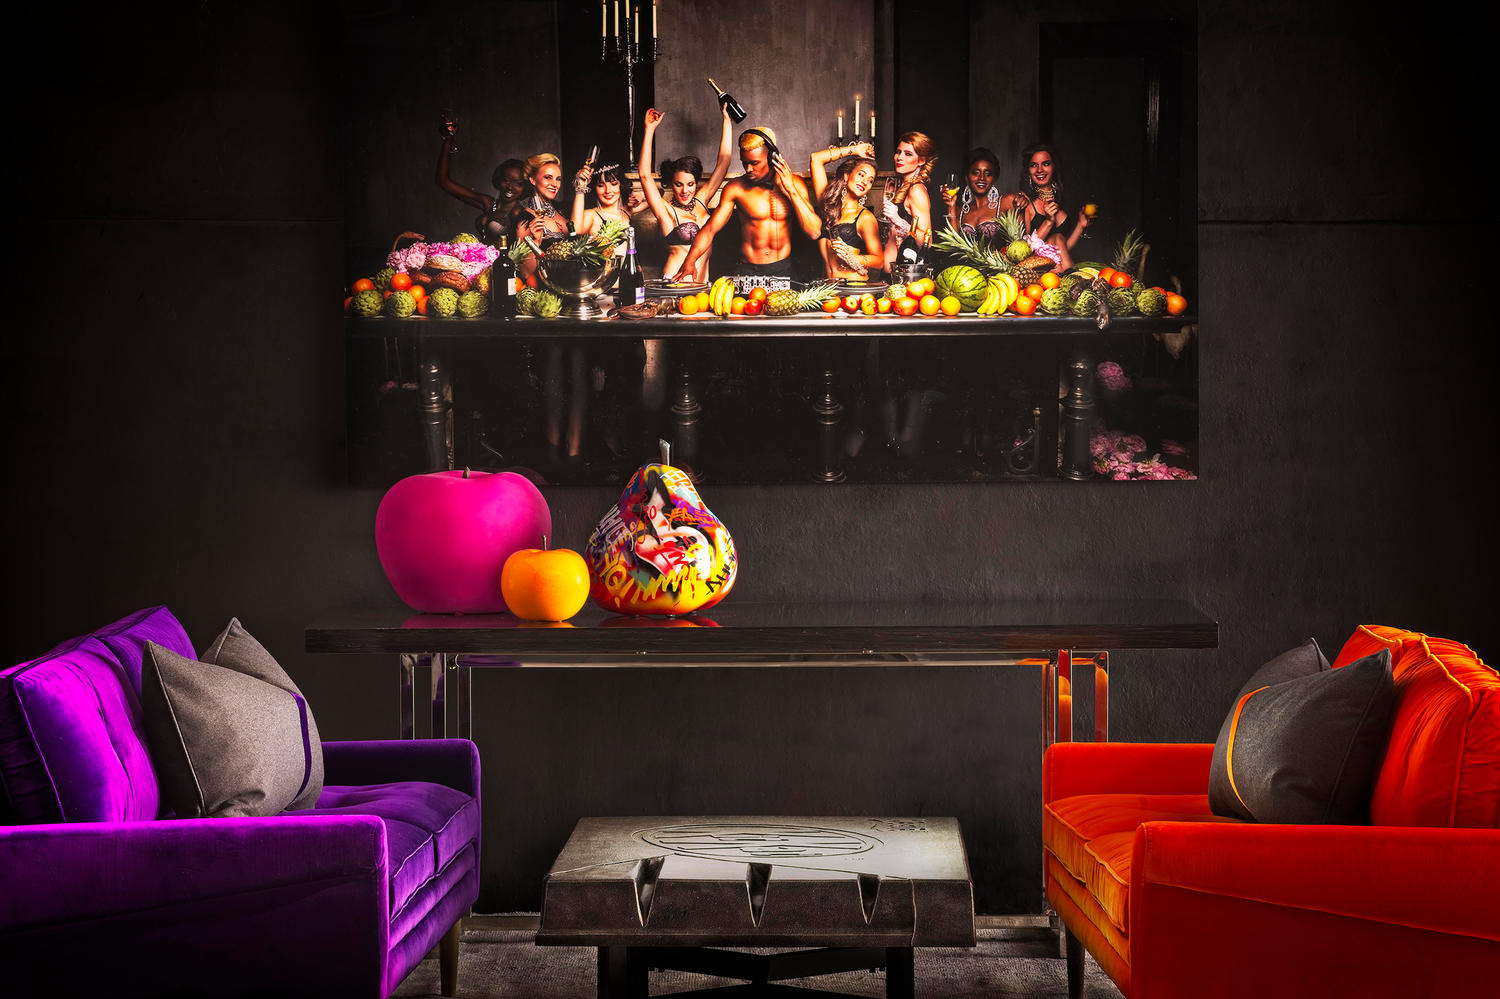 Firecracker sofas in Grape Escape and Tangerine Dream; Flavours plexiglass artwork; Various fruit sculptures; Choc Chunk coffee table